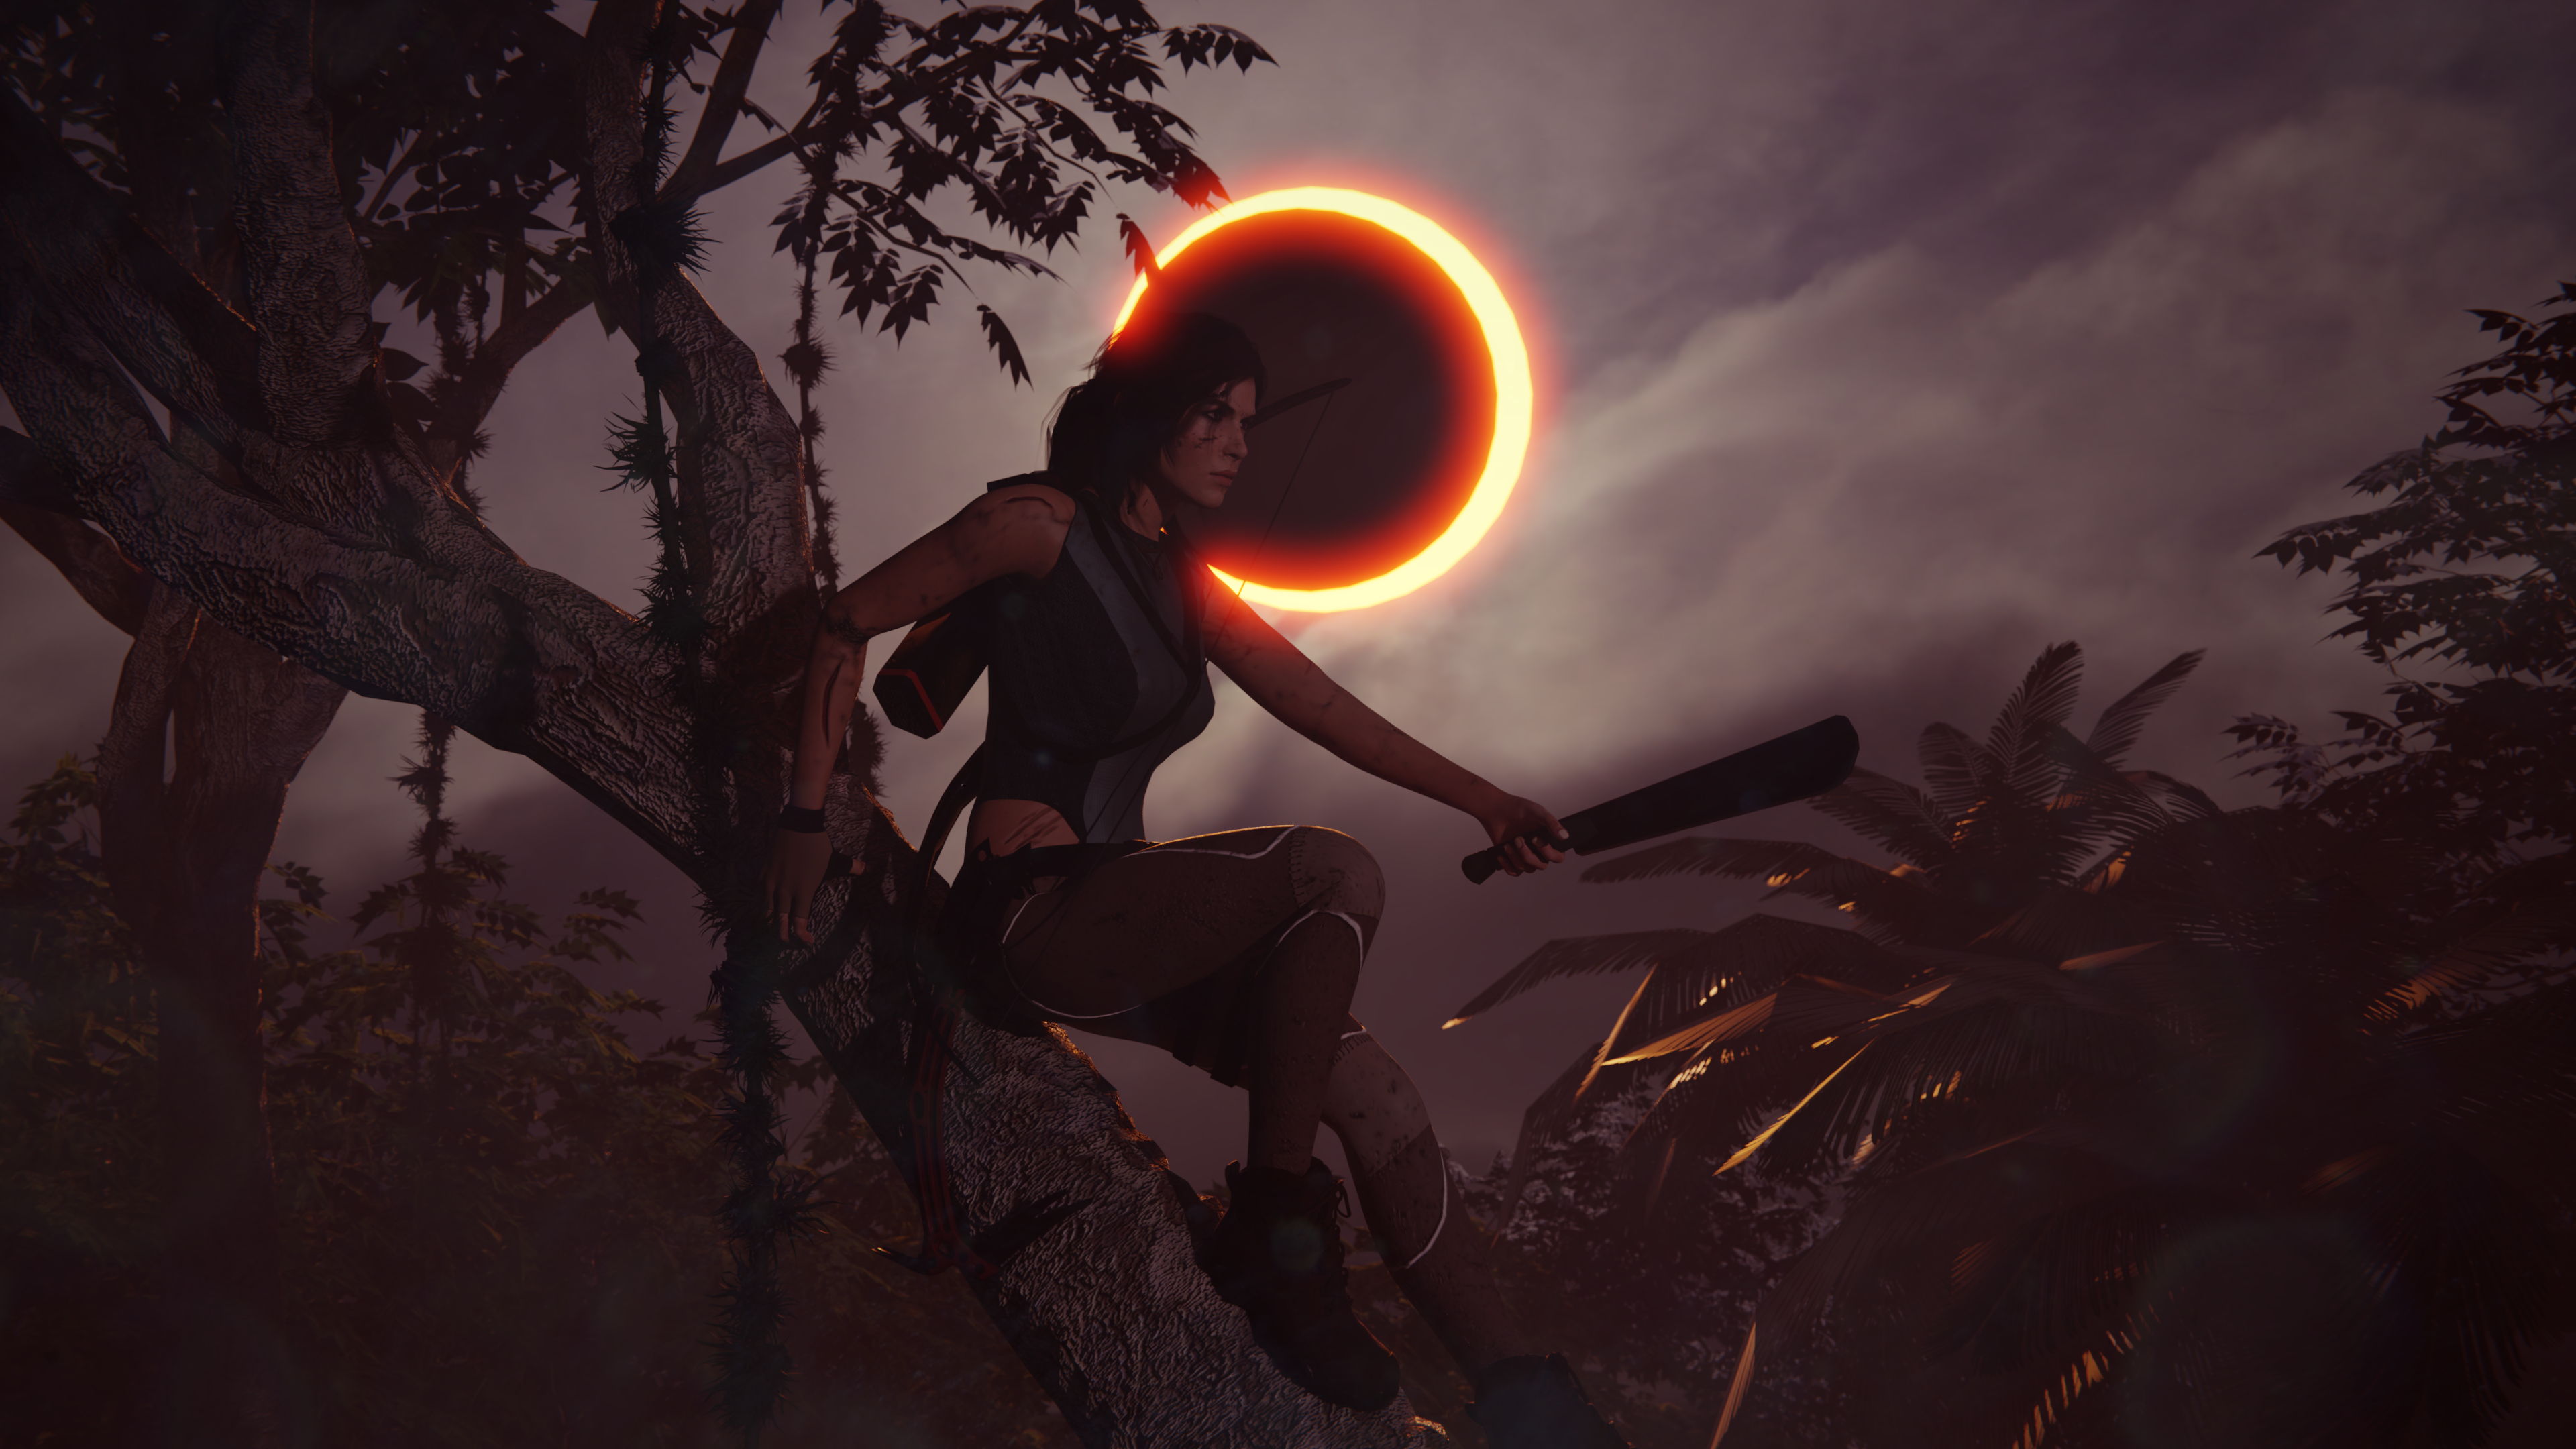 Shadow Of The Tomb Raider Wallpaper 4k By Mandaloking On Deviantart